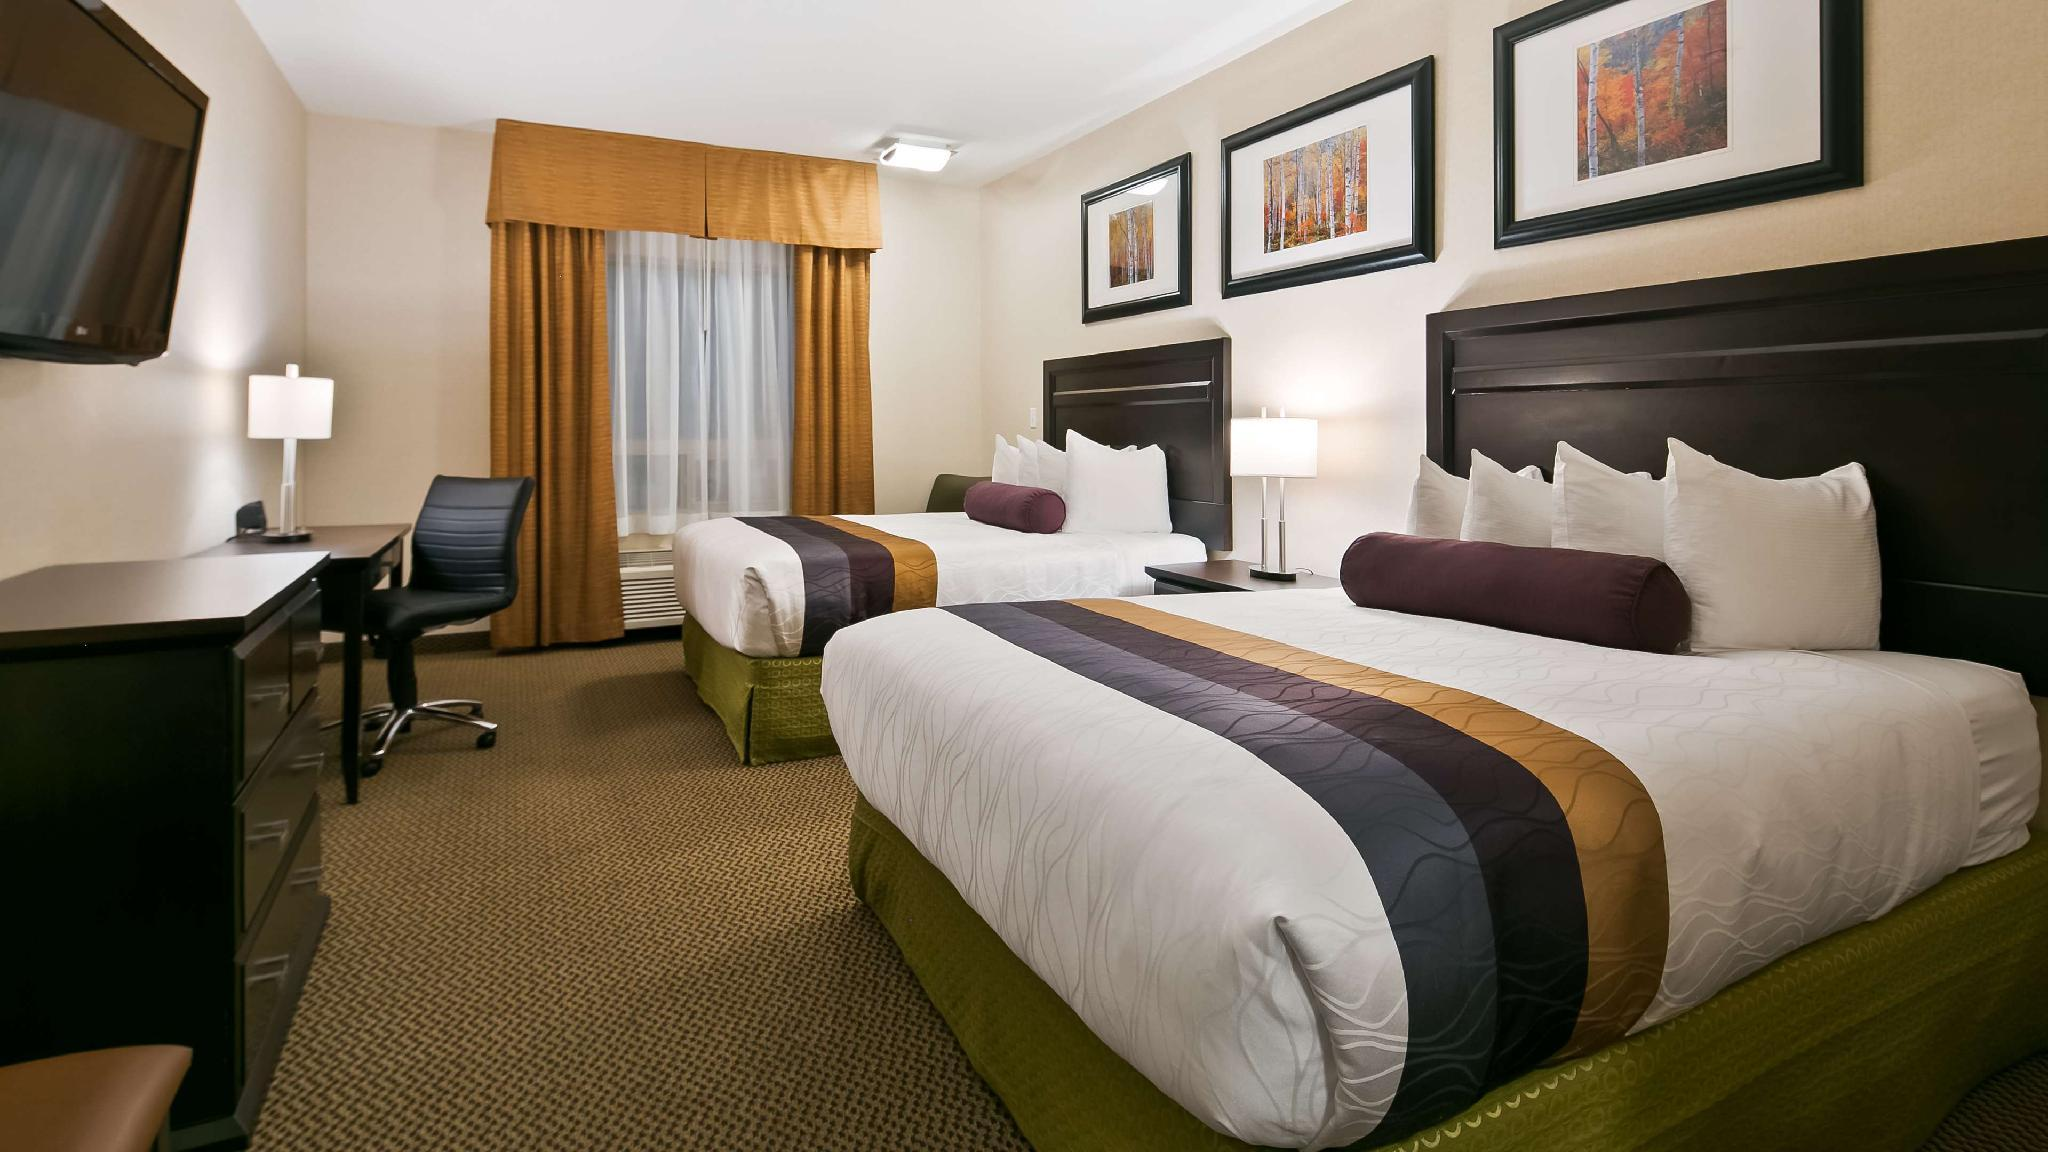 Best Western Plus The Inn At St. Albert, Division No. 11